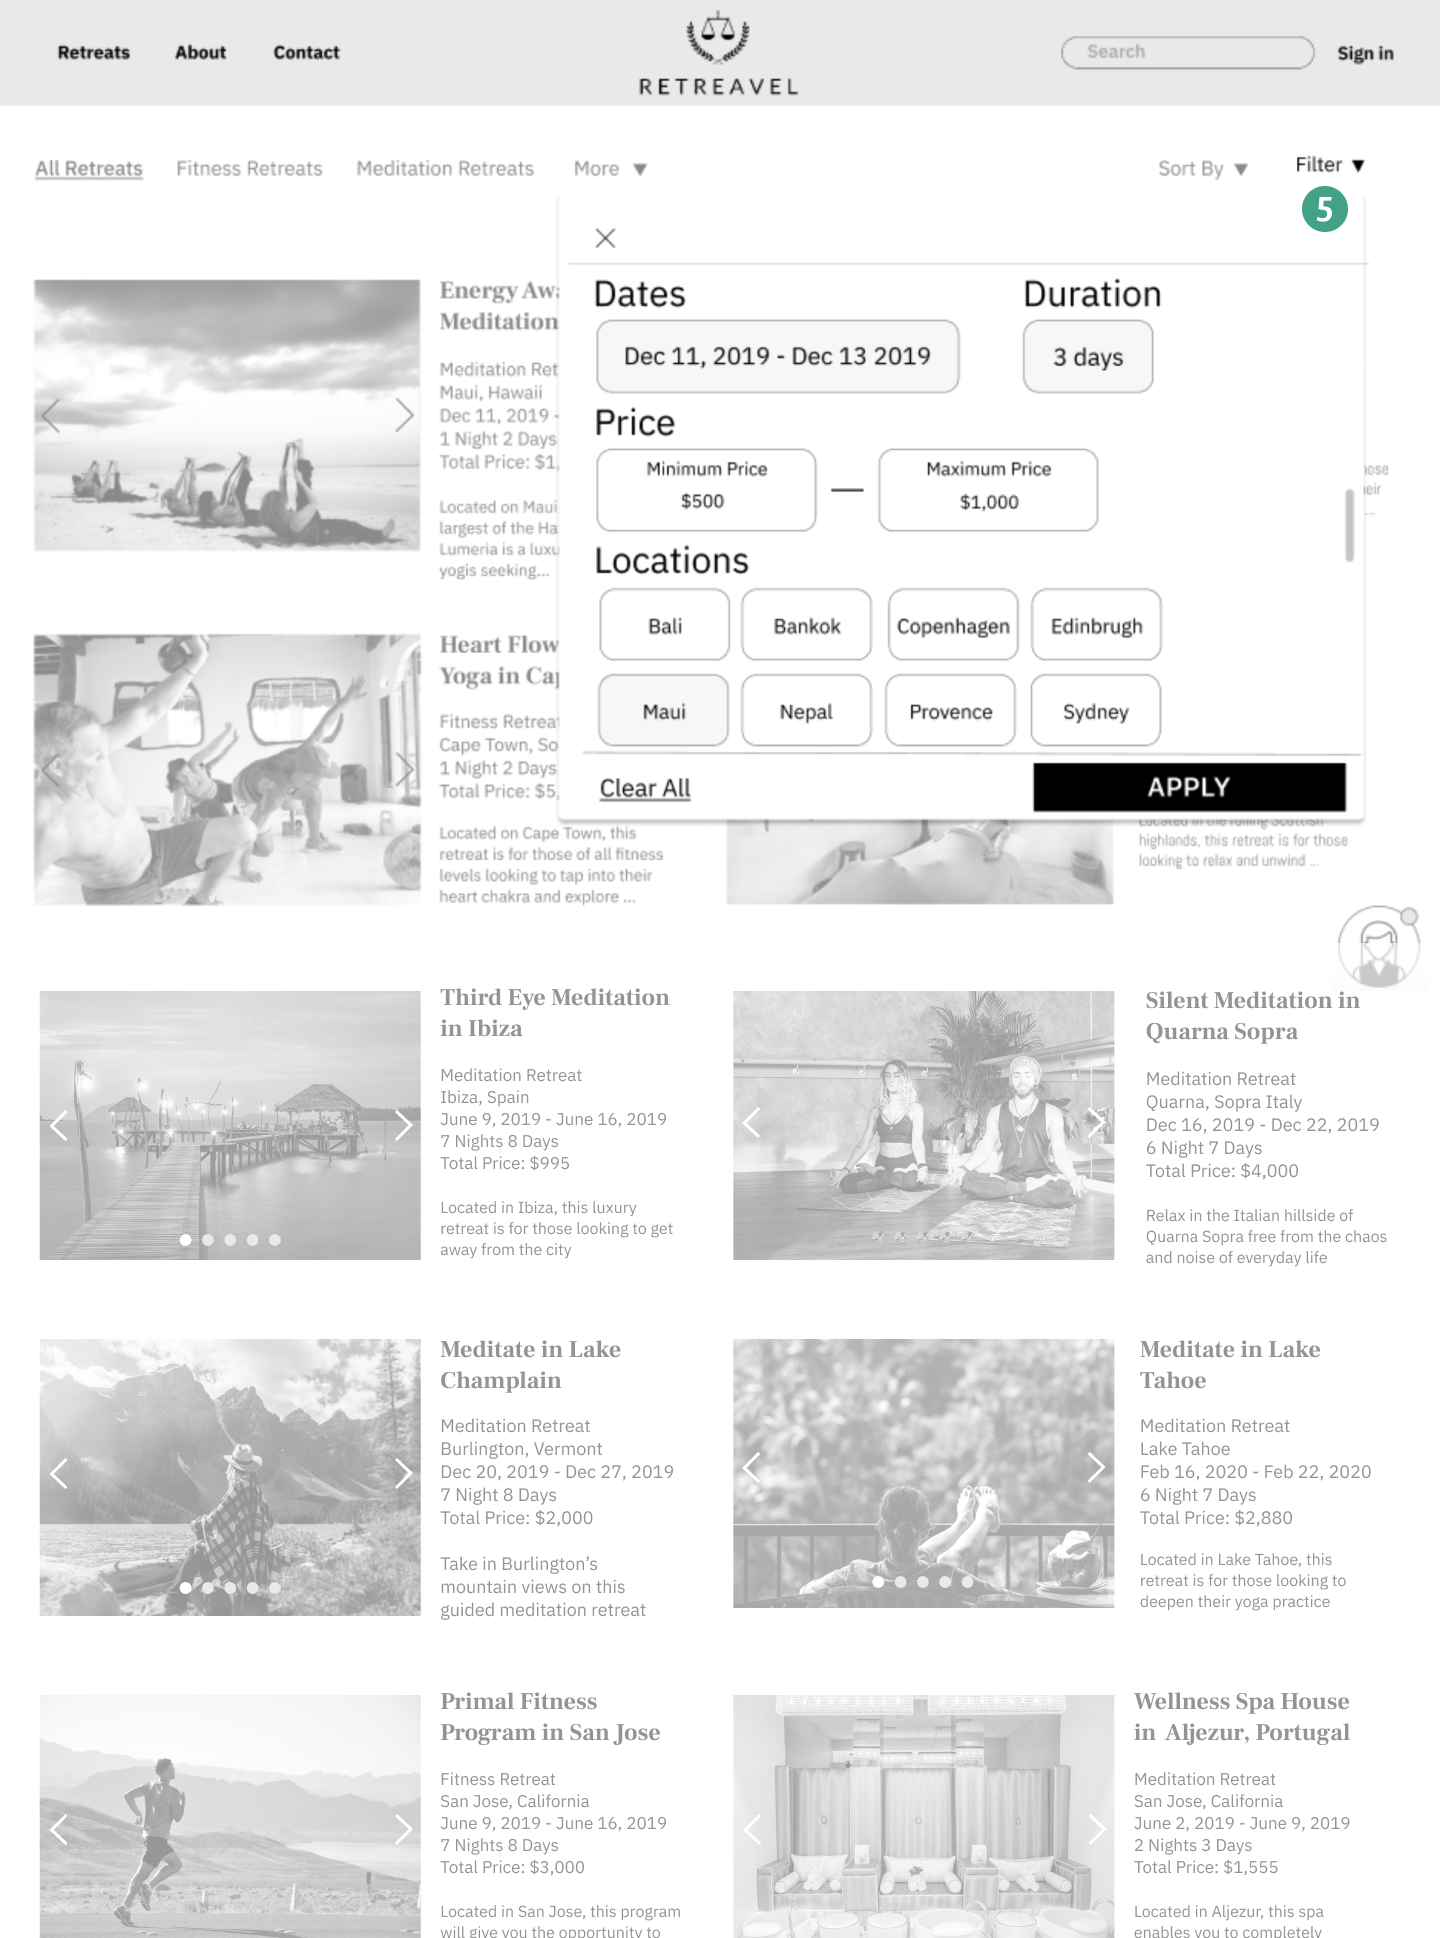 All Retreats page(scroll on image)